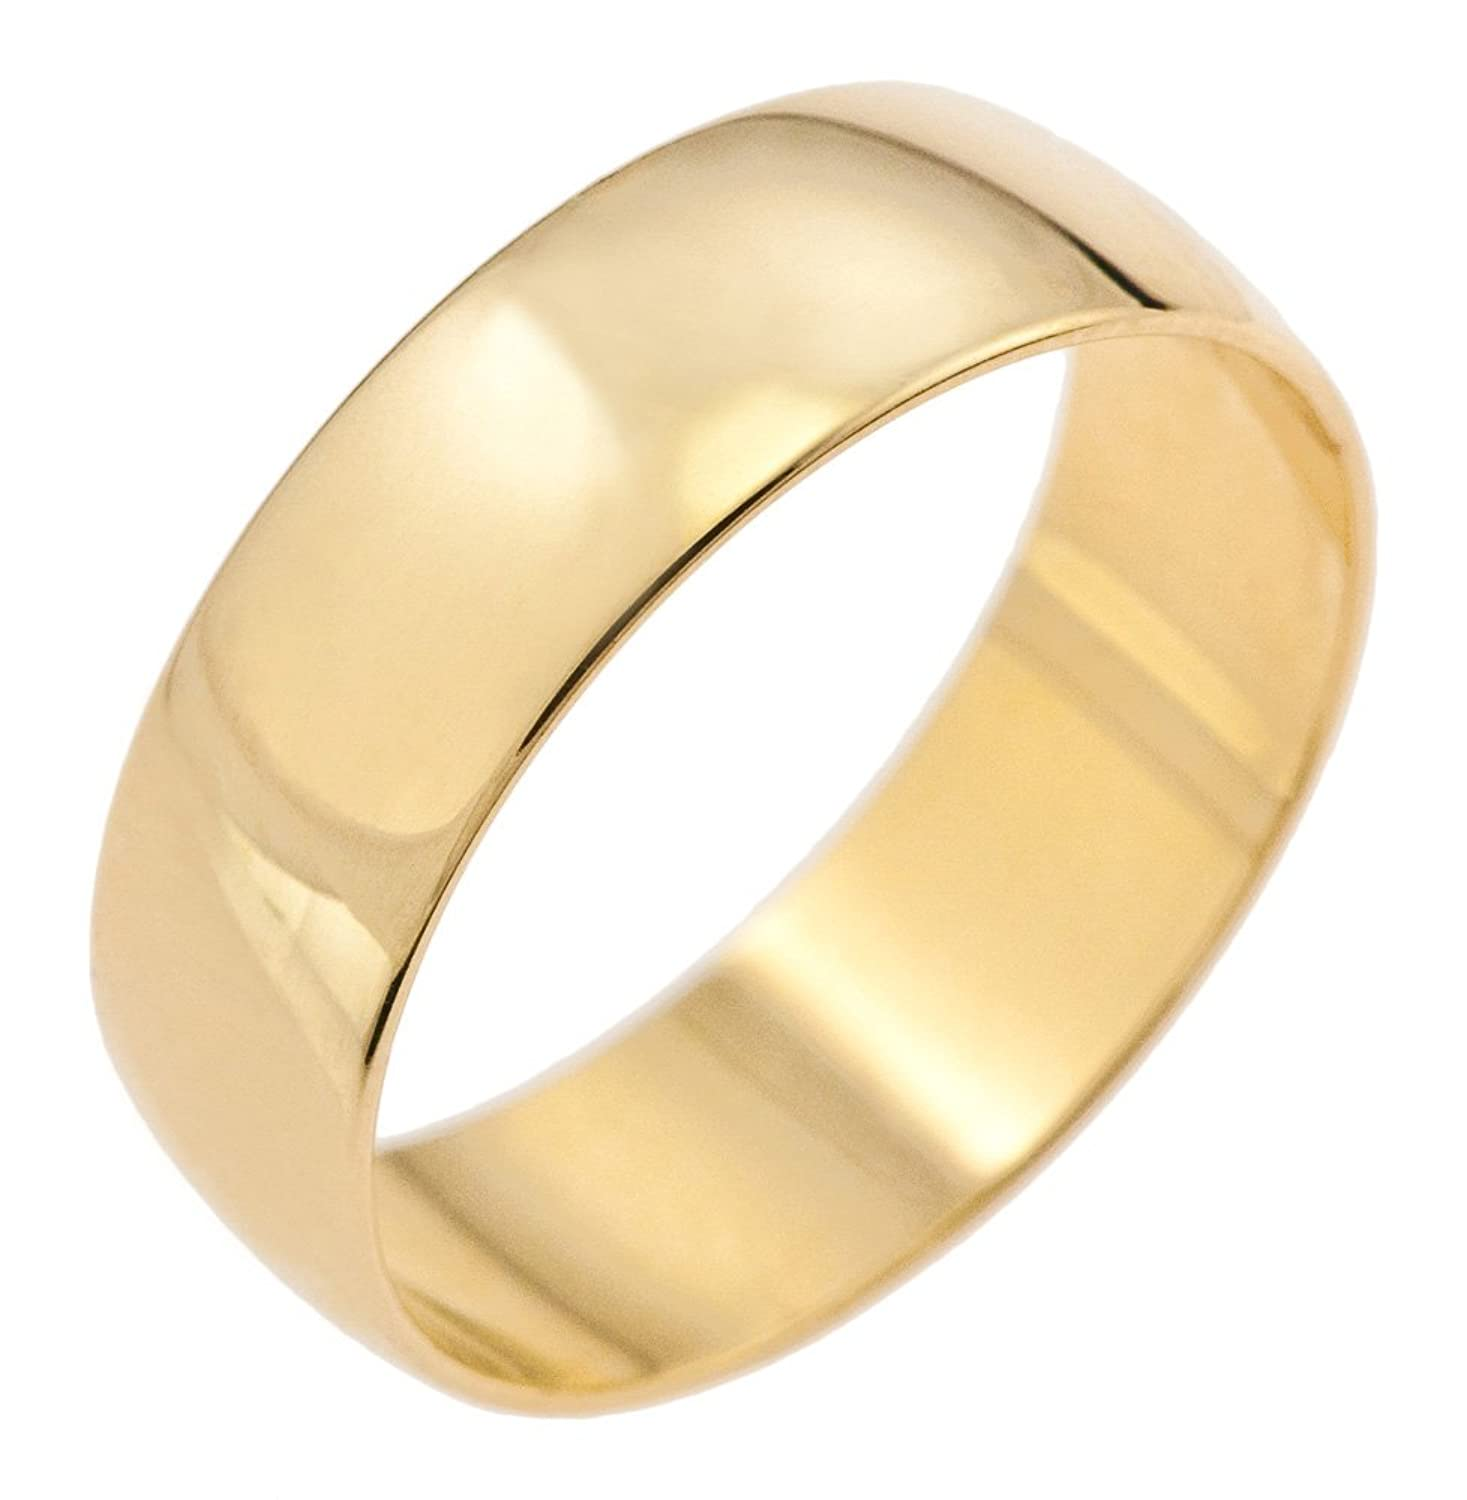 kareco 9ct yellow gold 6mm d shape wedding ring amazoncouk jewellery - Wedding Rings Amazon